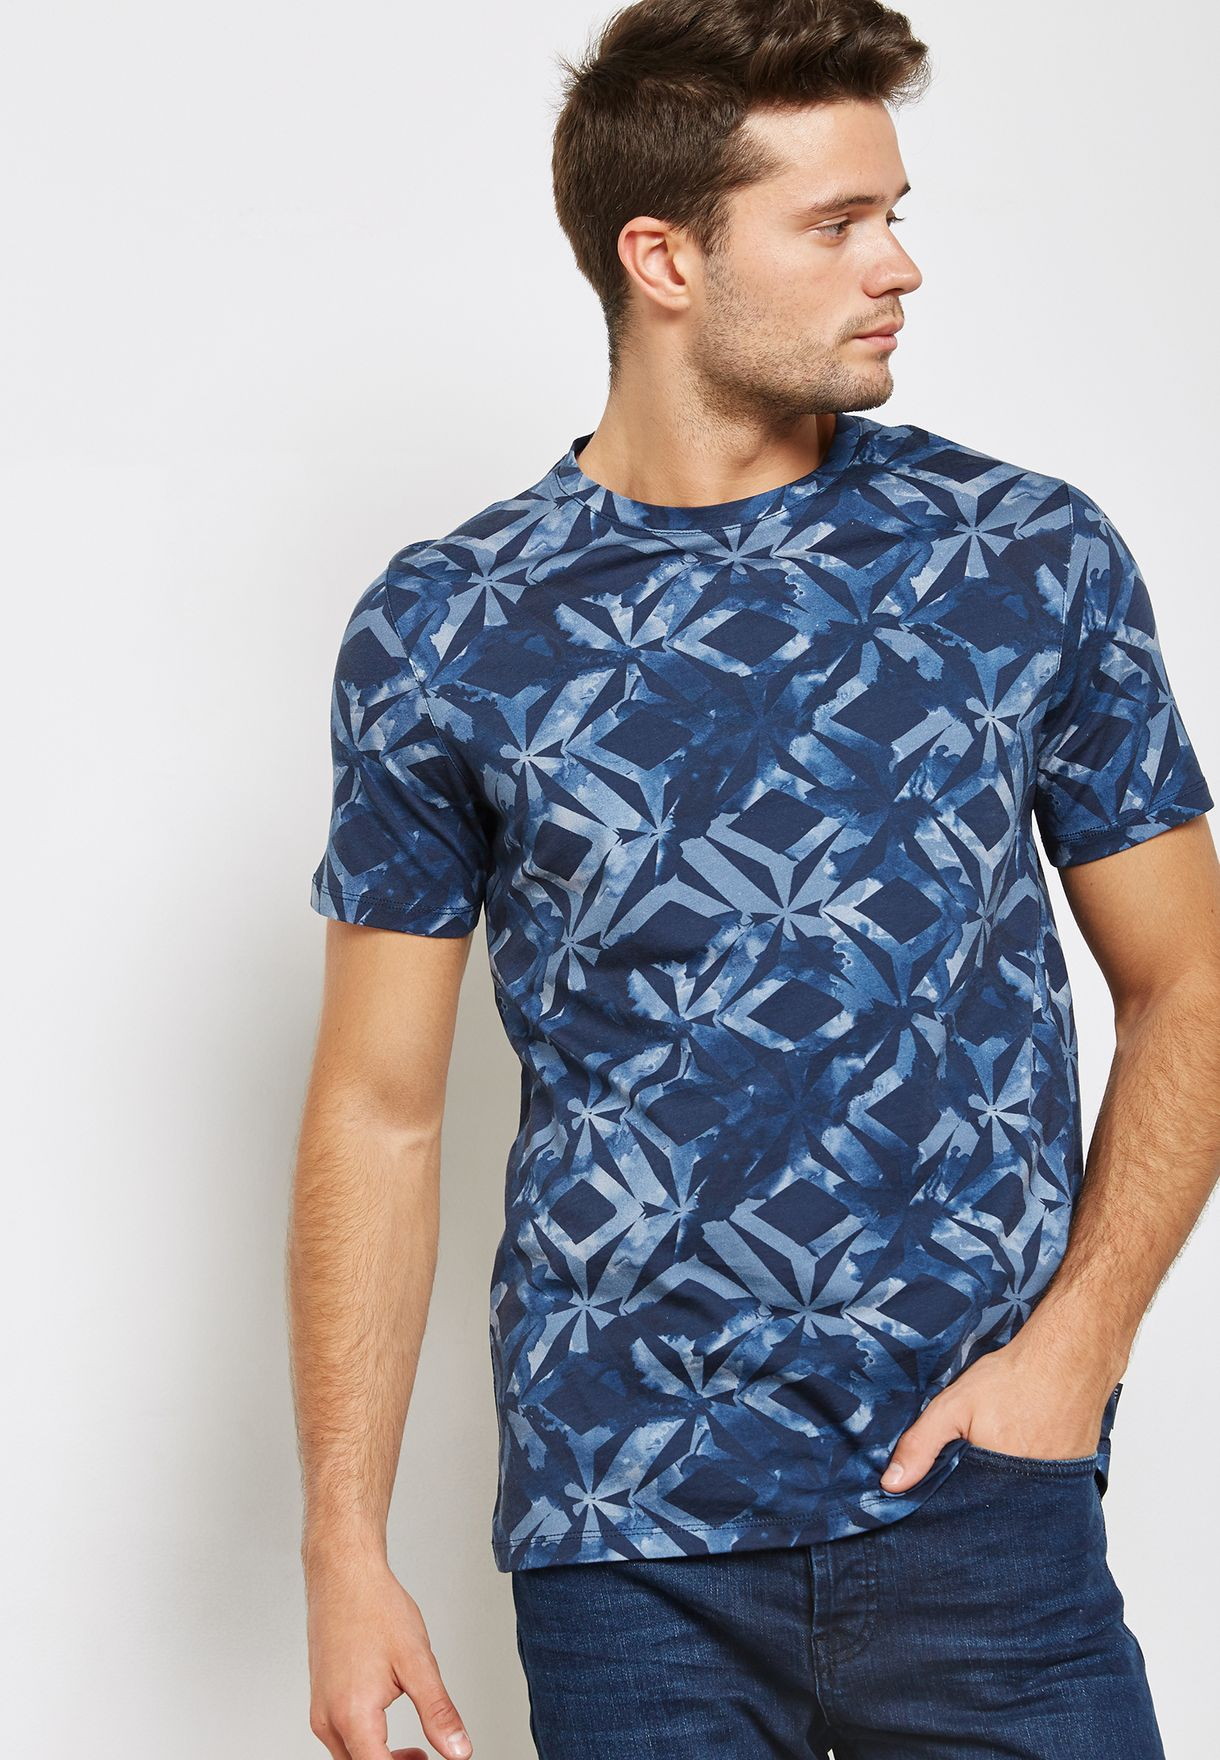 7d5e40be18b7e7 Shop Ted baker prints Woof Geo Print T-Shirt 141493 for Men in Kuwait -  TE456AT93WSW